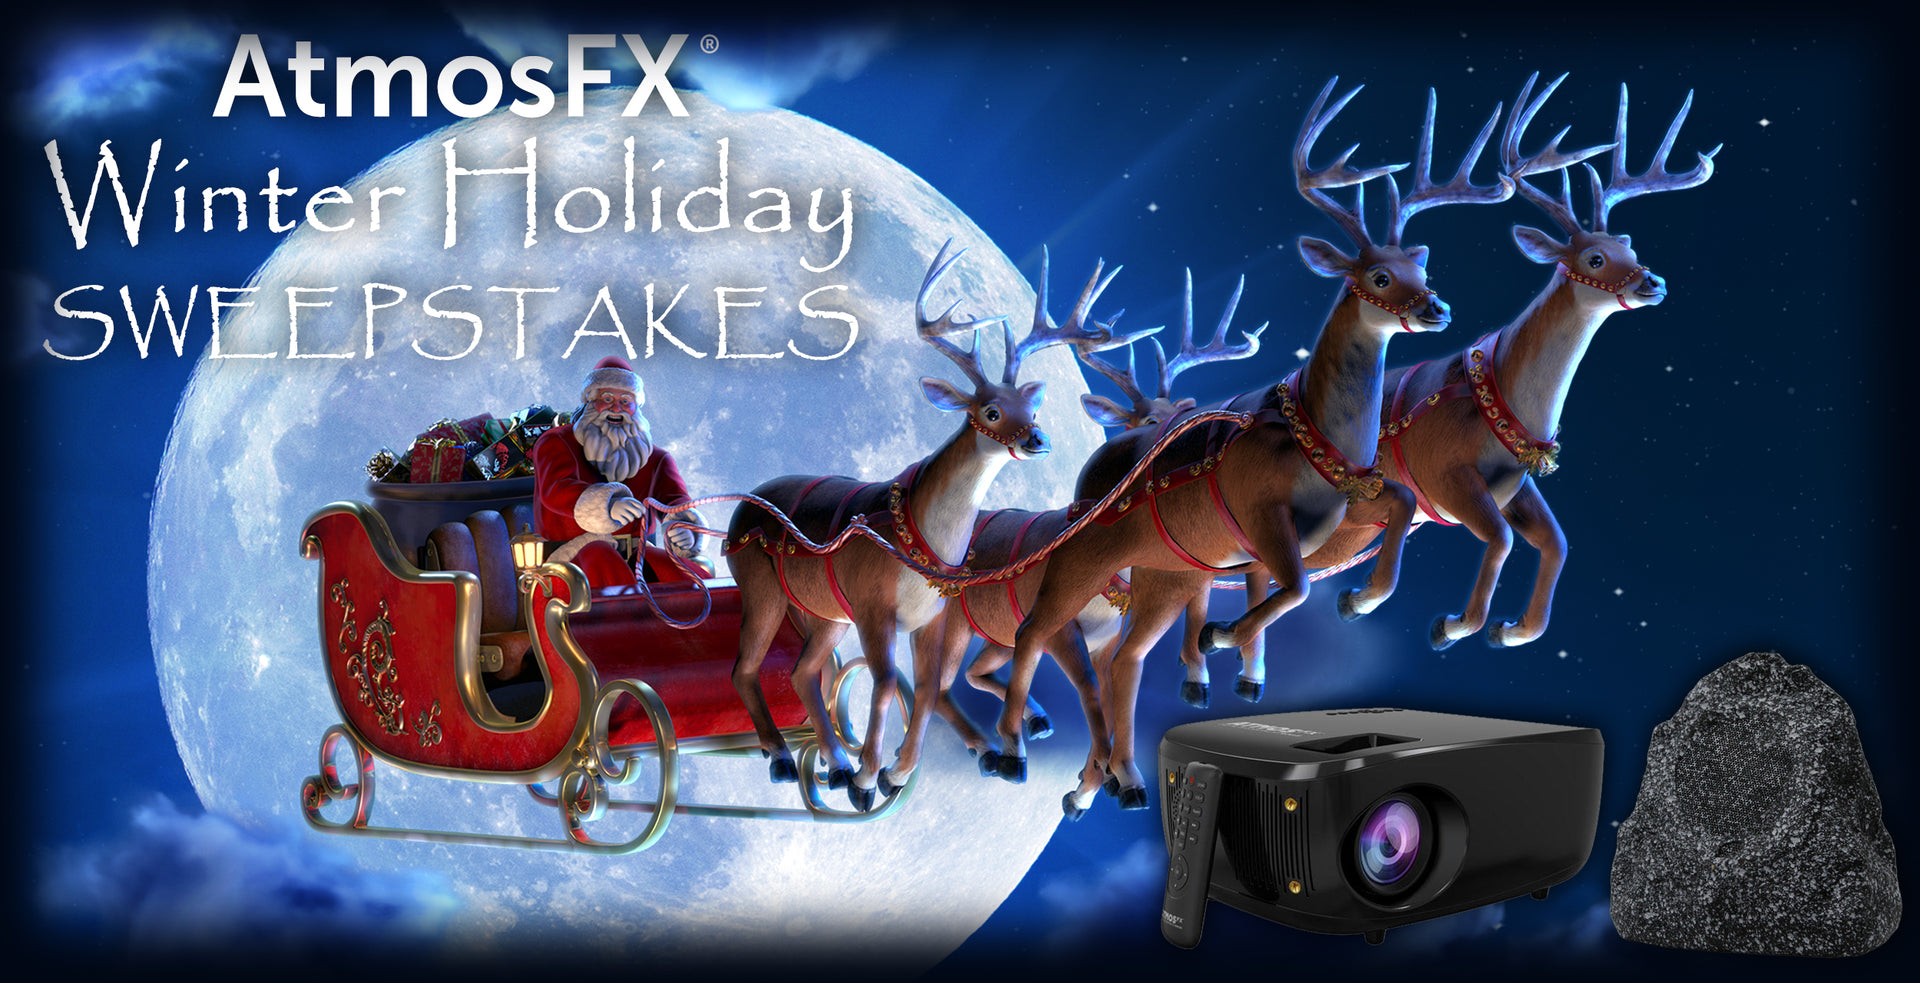 AtmosFX Winter Holiday Sweepstakes | AtmosFX